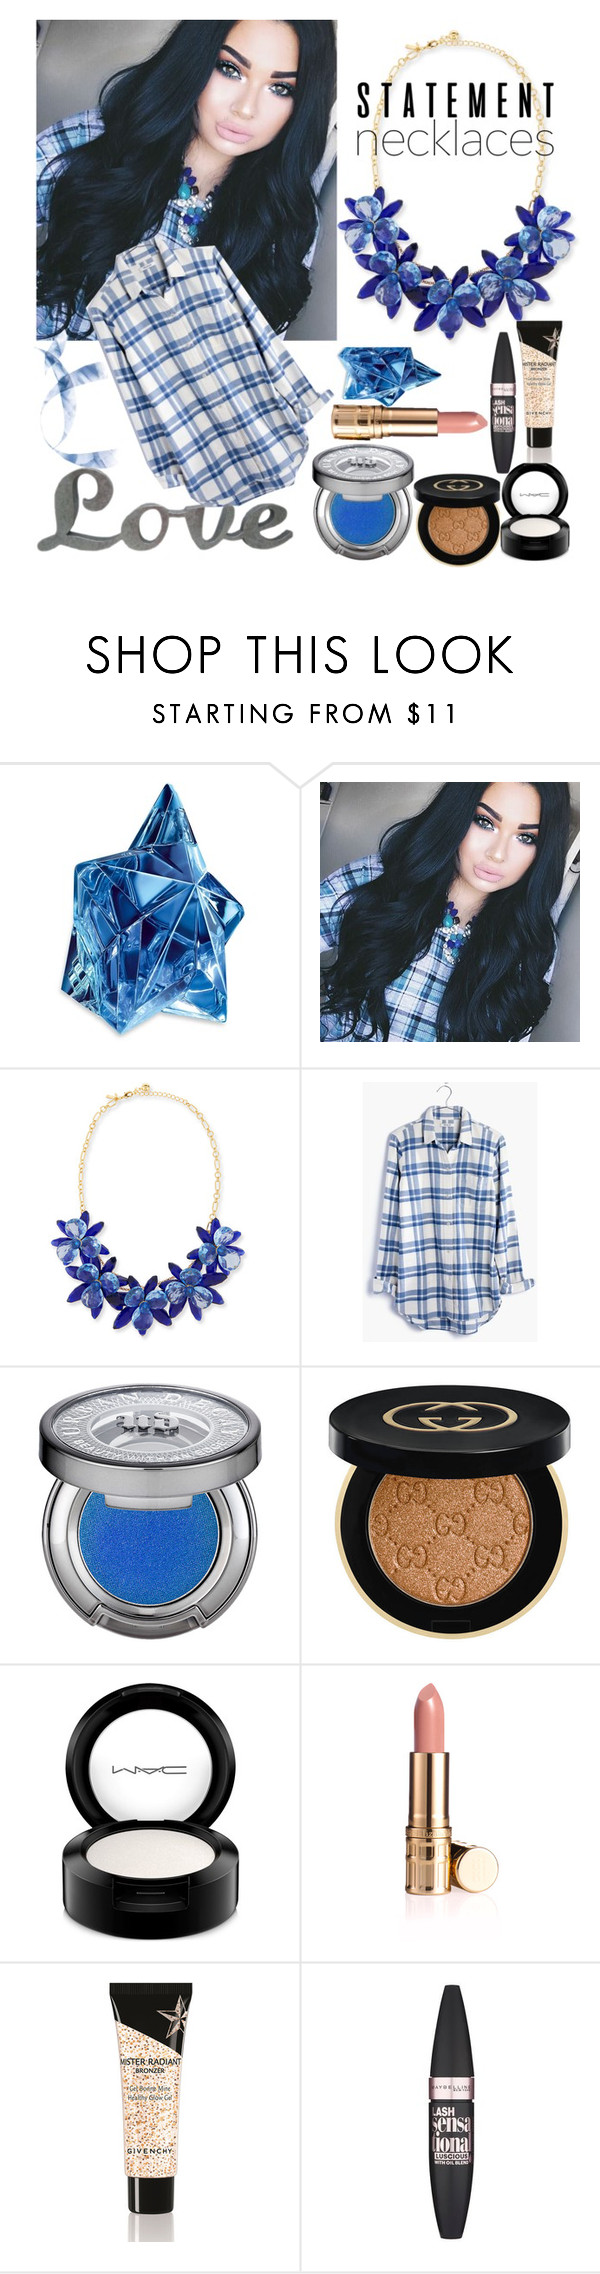 """""""Untitled #17"""" by alexandrairinamihai ❤ liked on Polyvore featuring Thierry Mugler, Kate Spade, Madewell, Urban Decay, Gucci, MAC Cosmetics, Elizabeth Arden, Givenchy and Maybelline"""